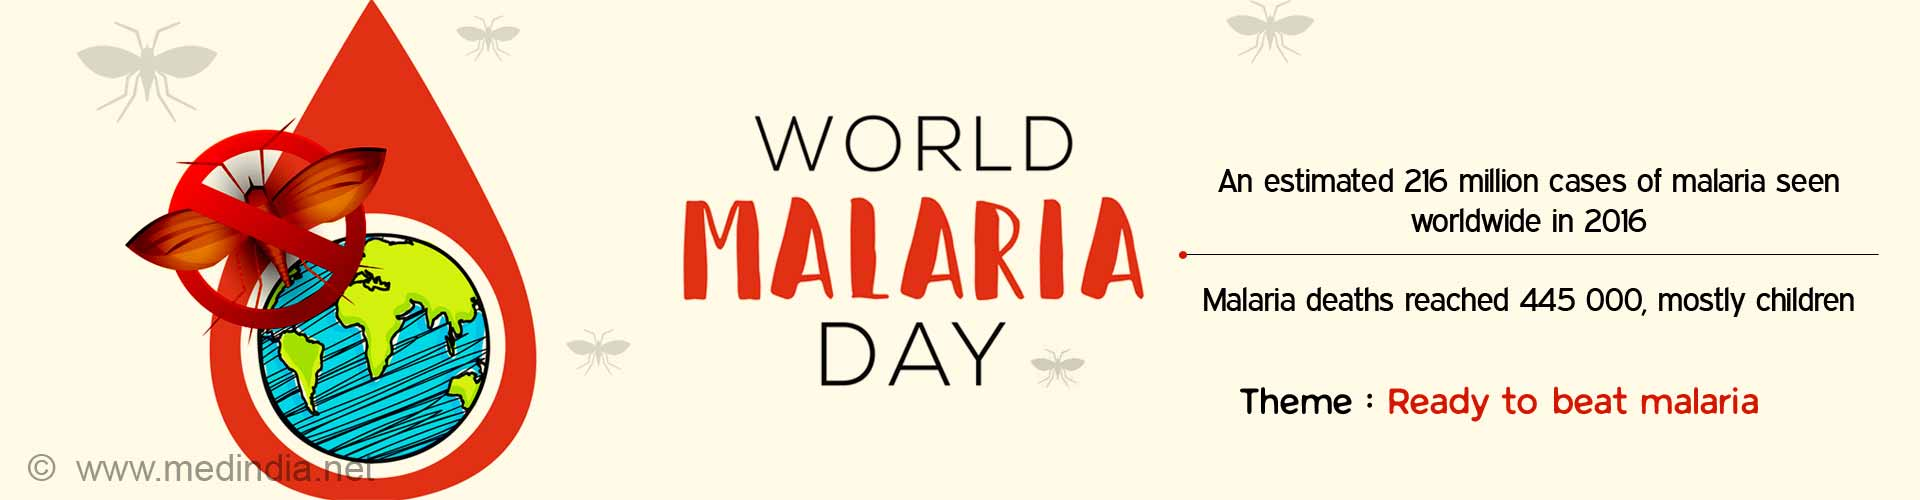 world malaria day an estimated 216 million cases of malaria seen worldwide in 2016 malaria deaths reached 445 000, mostly children theme: ready to beat malaria